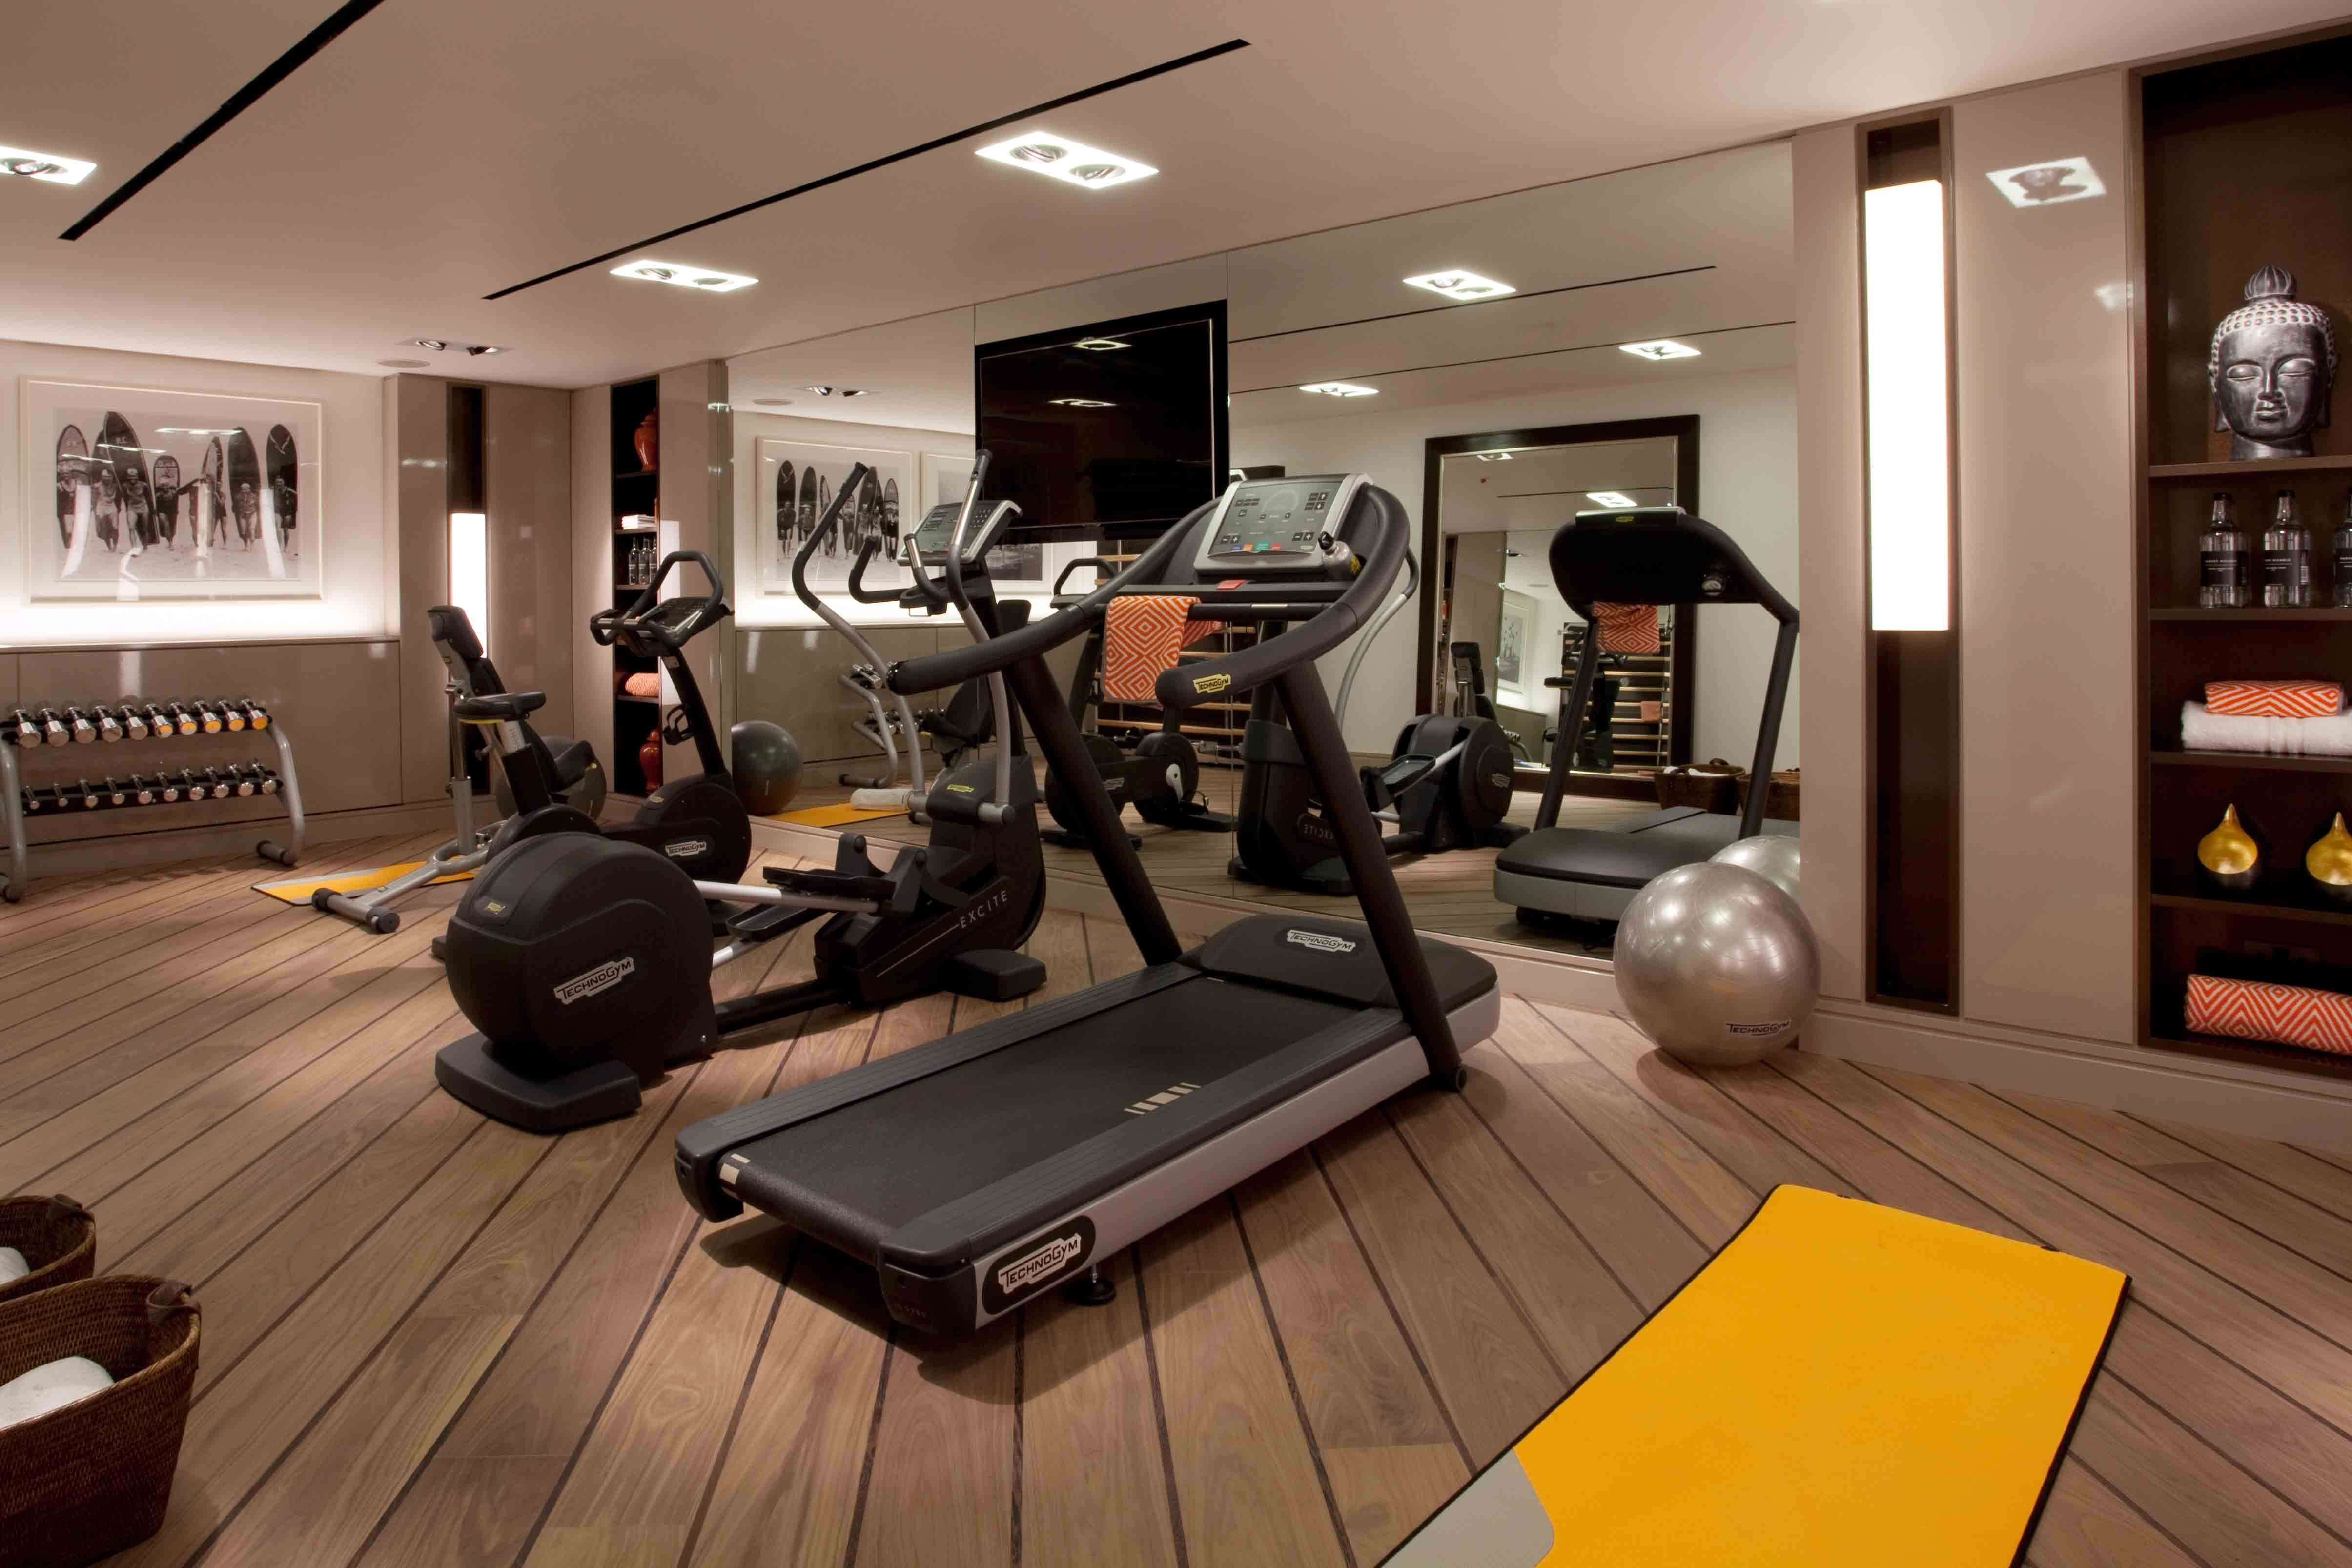 St saviours church knightsbridge london gym fitness at